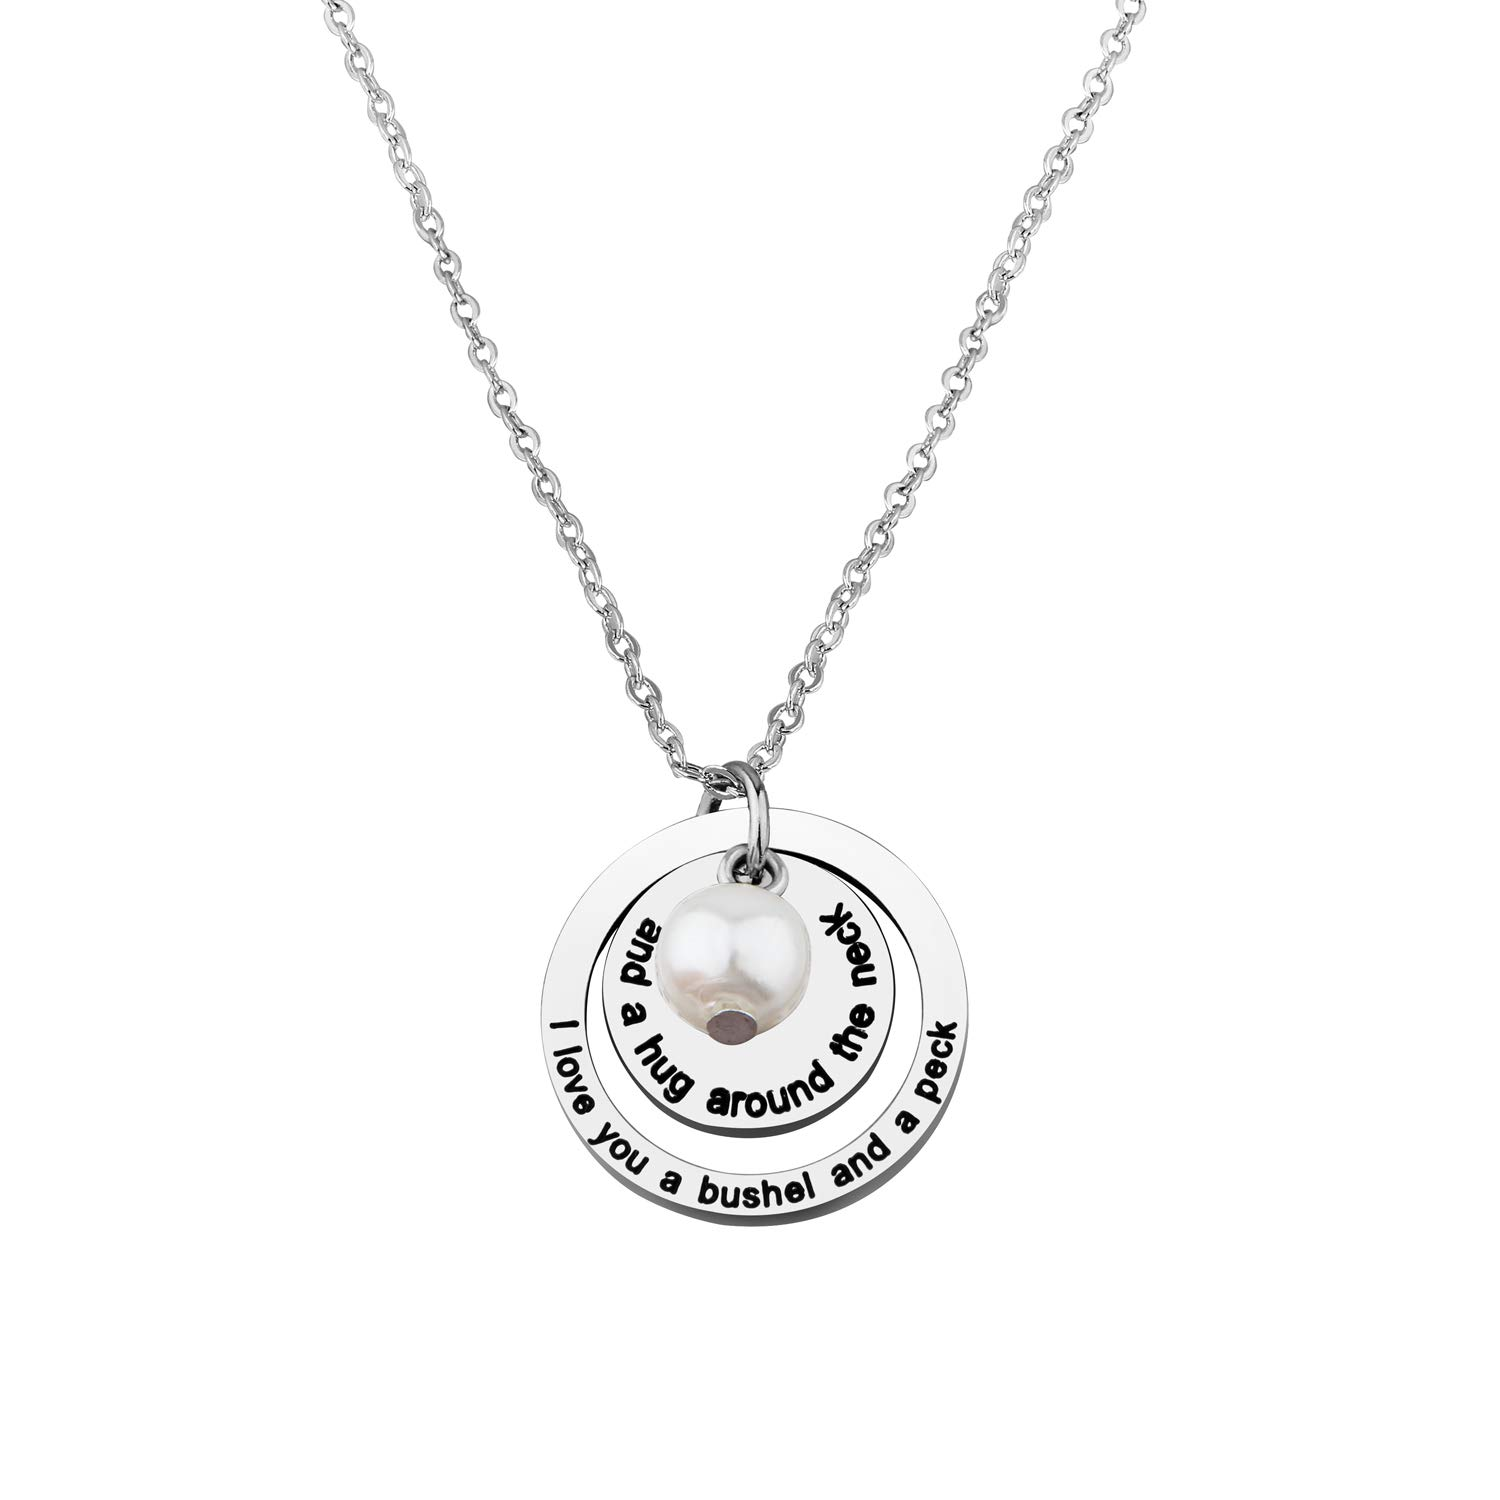 I Love You a Bushel and a Peck Necklace Gift for Mom Grandma (Silver)